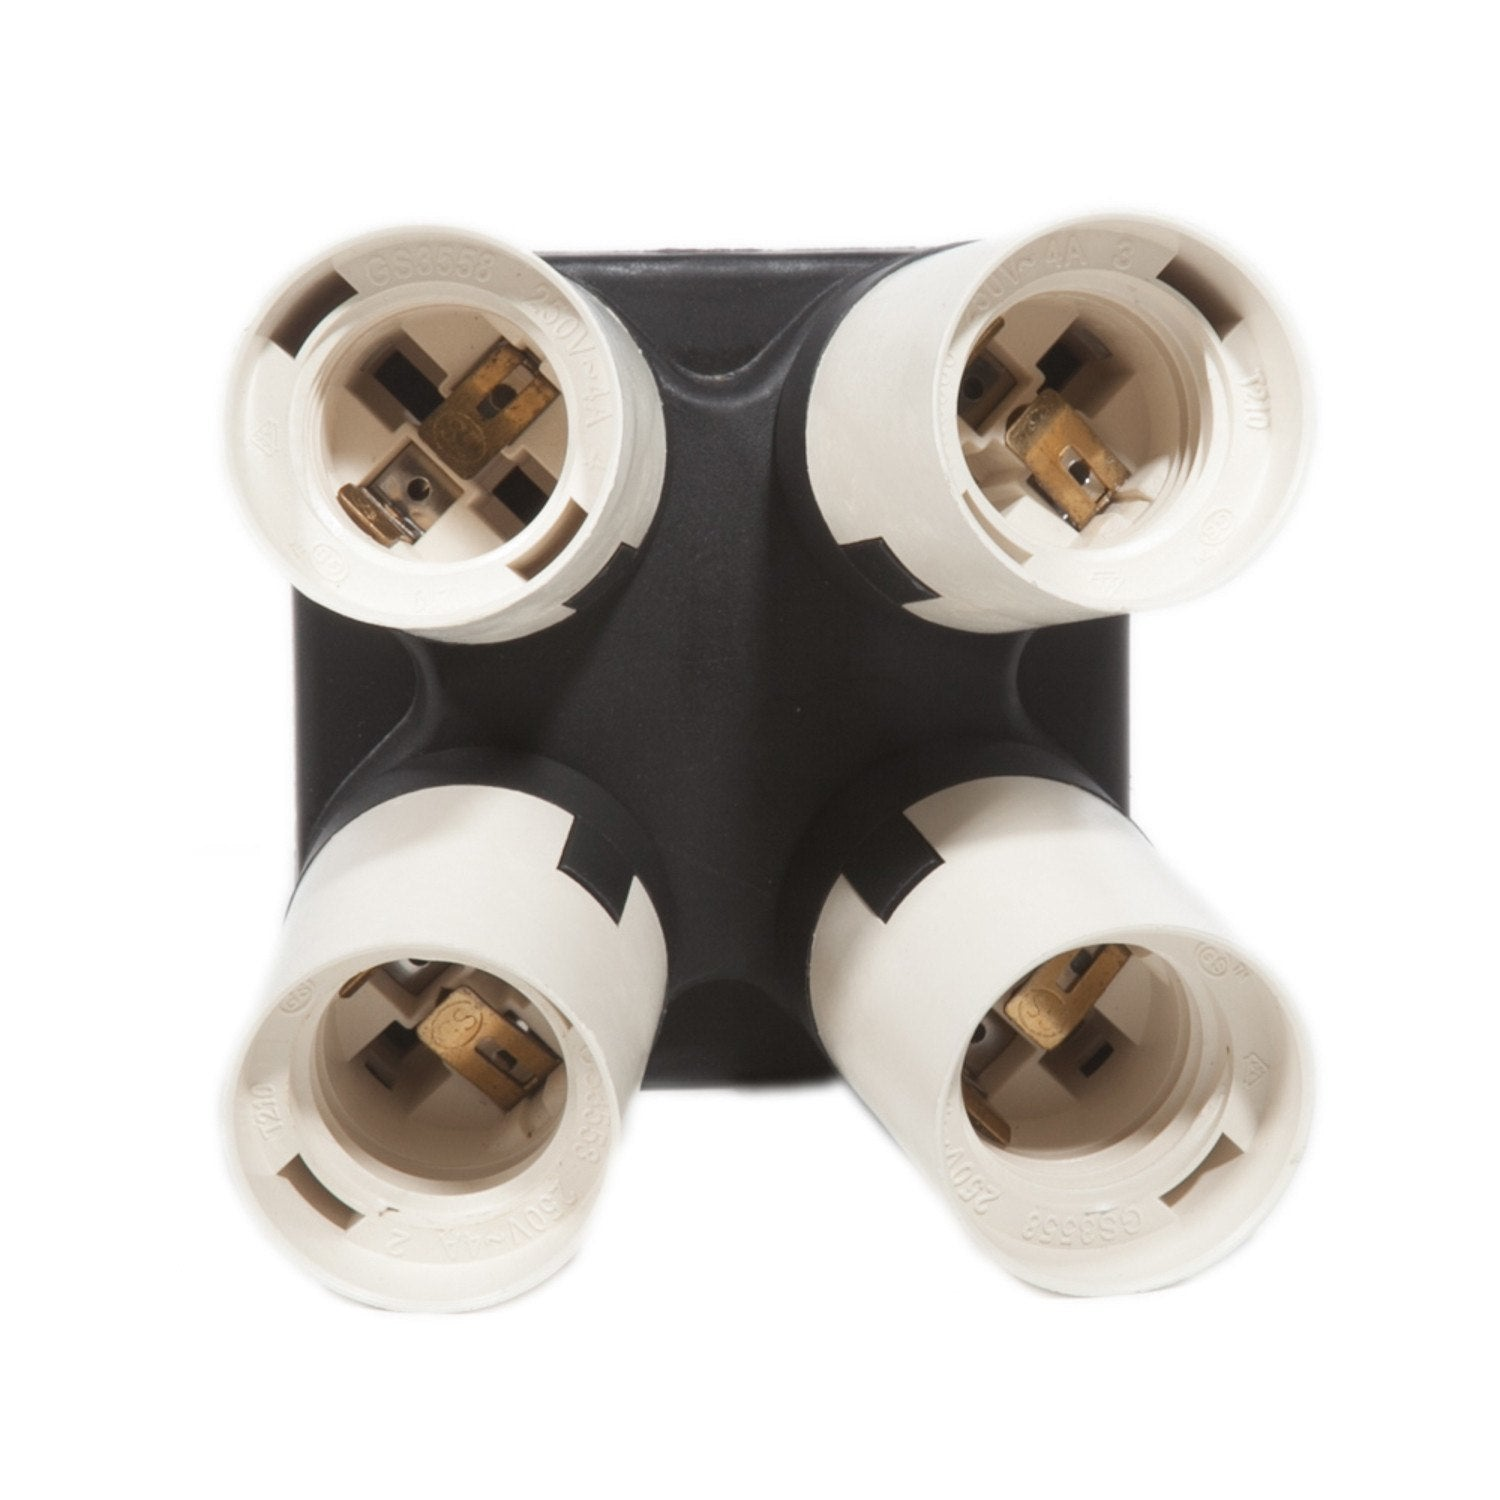 Four Socket Adapter for Photography / Video Fluorescent Light Fixture -